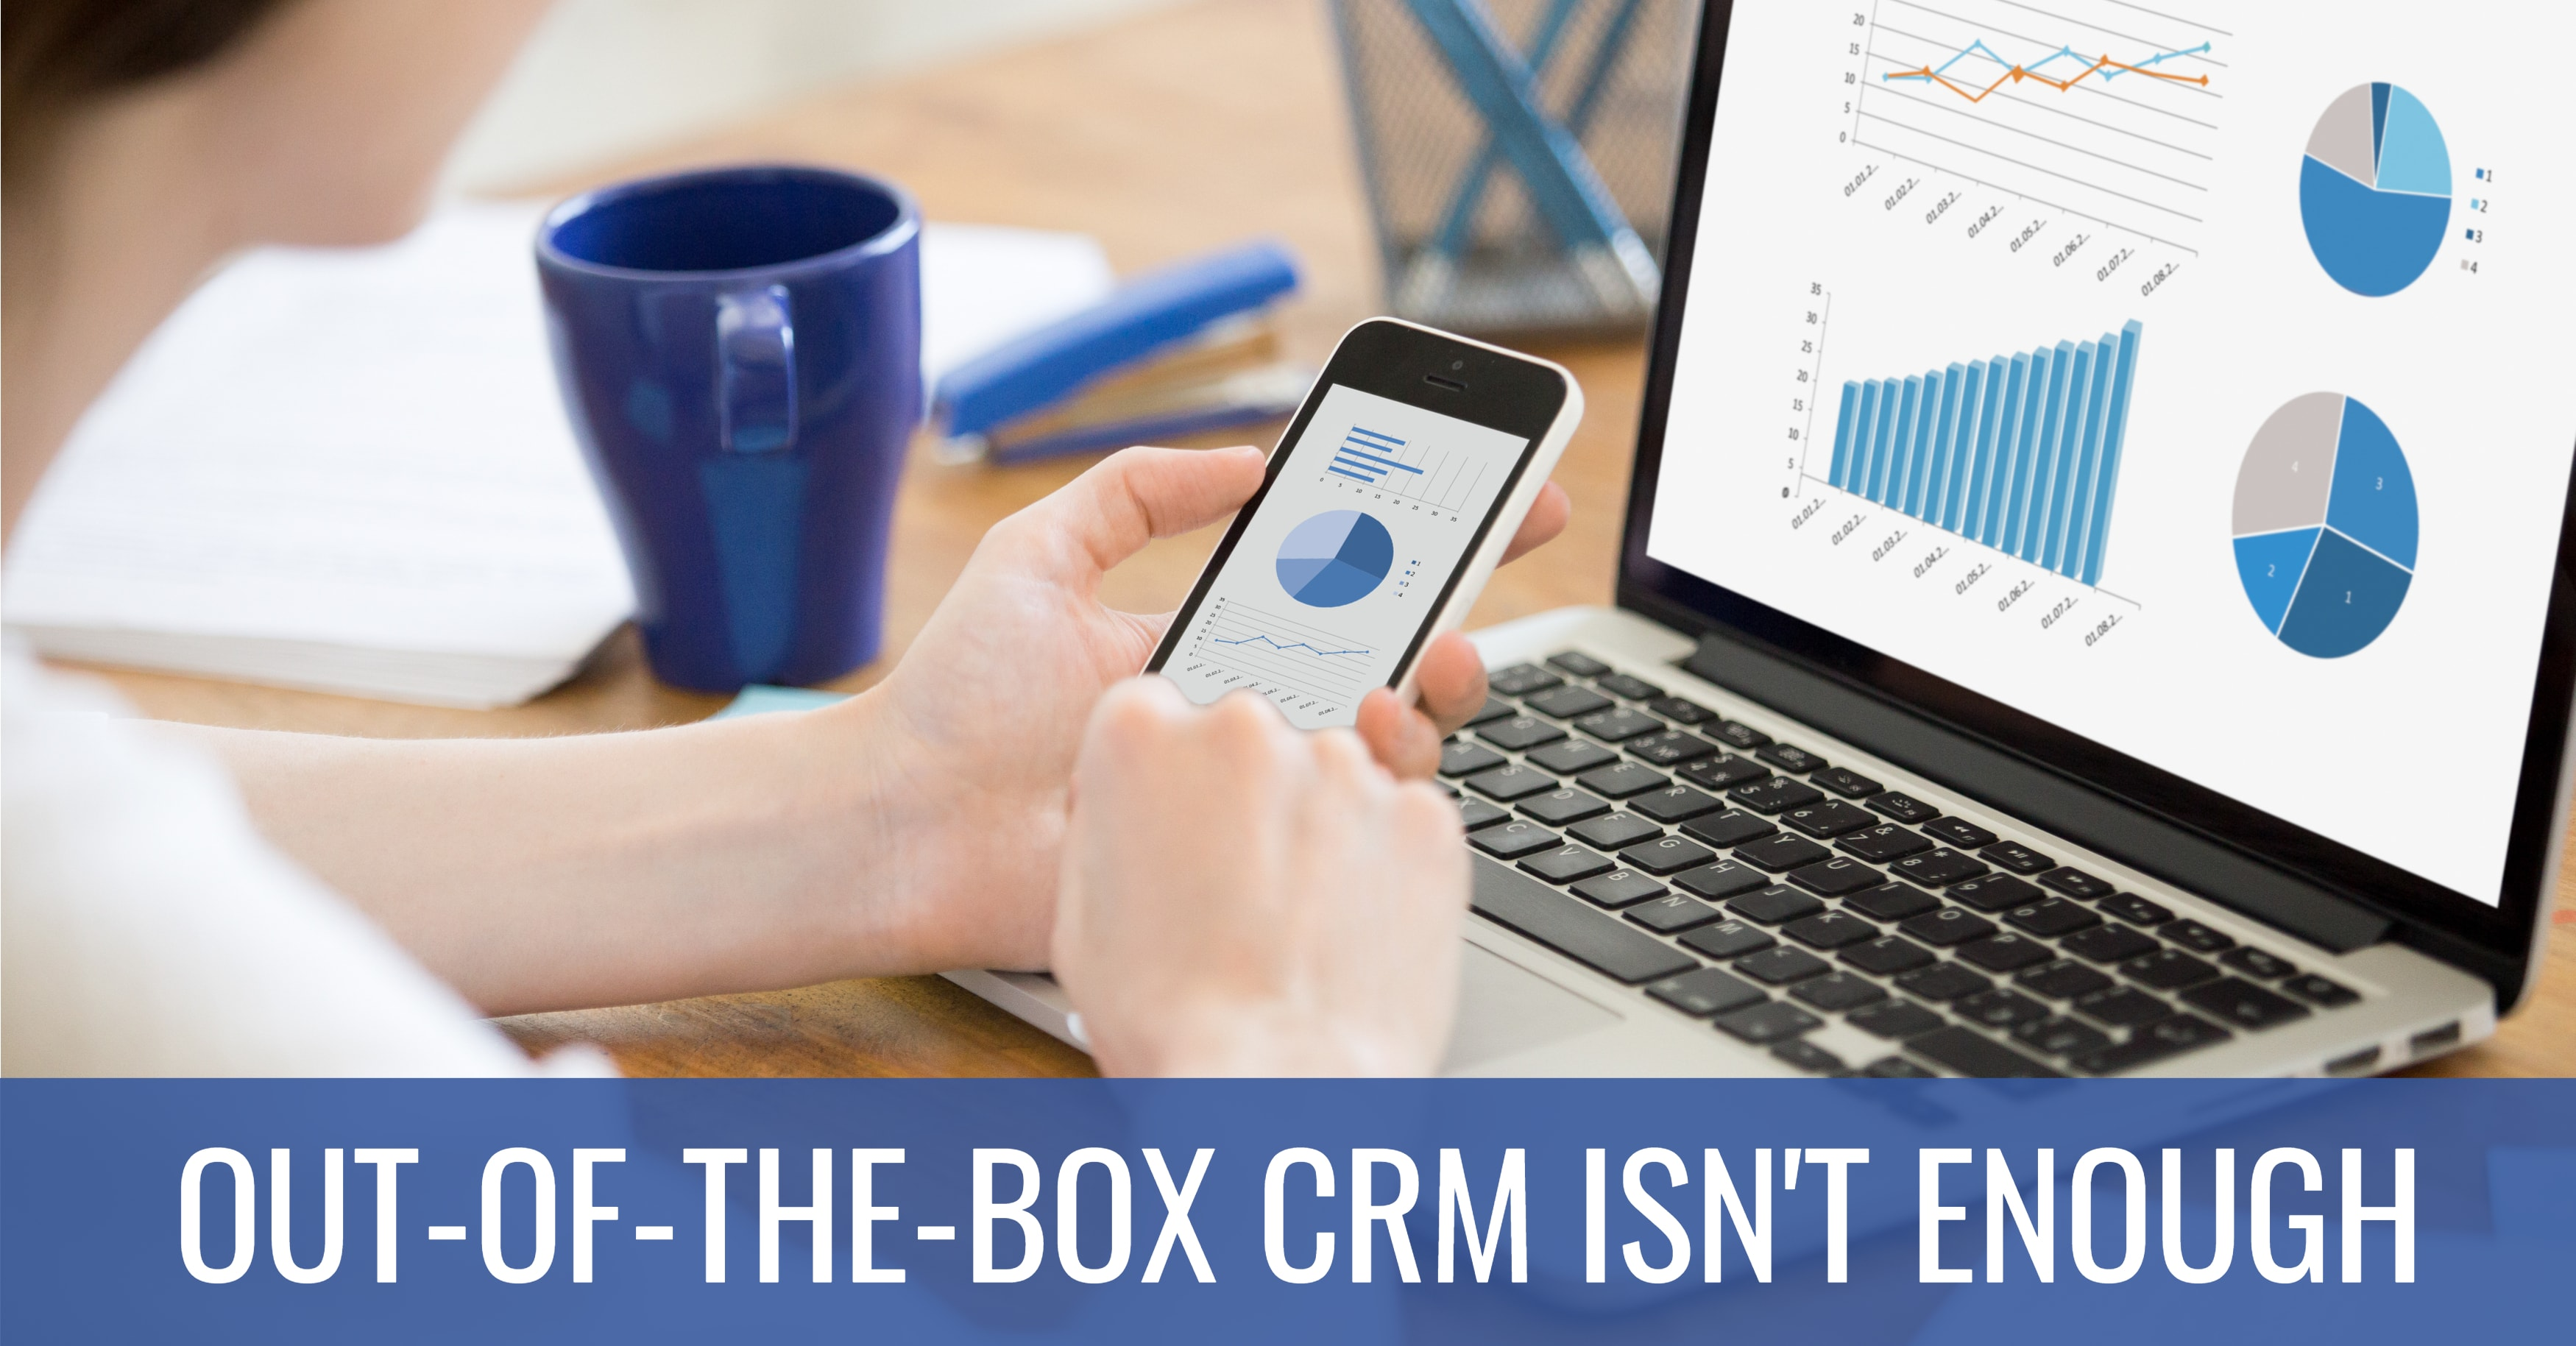 Out-of-the-Box CRM